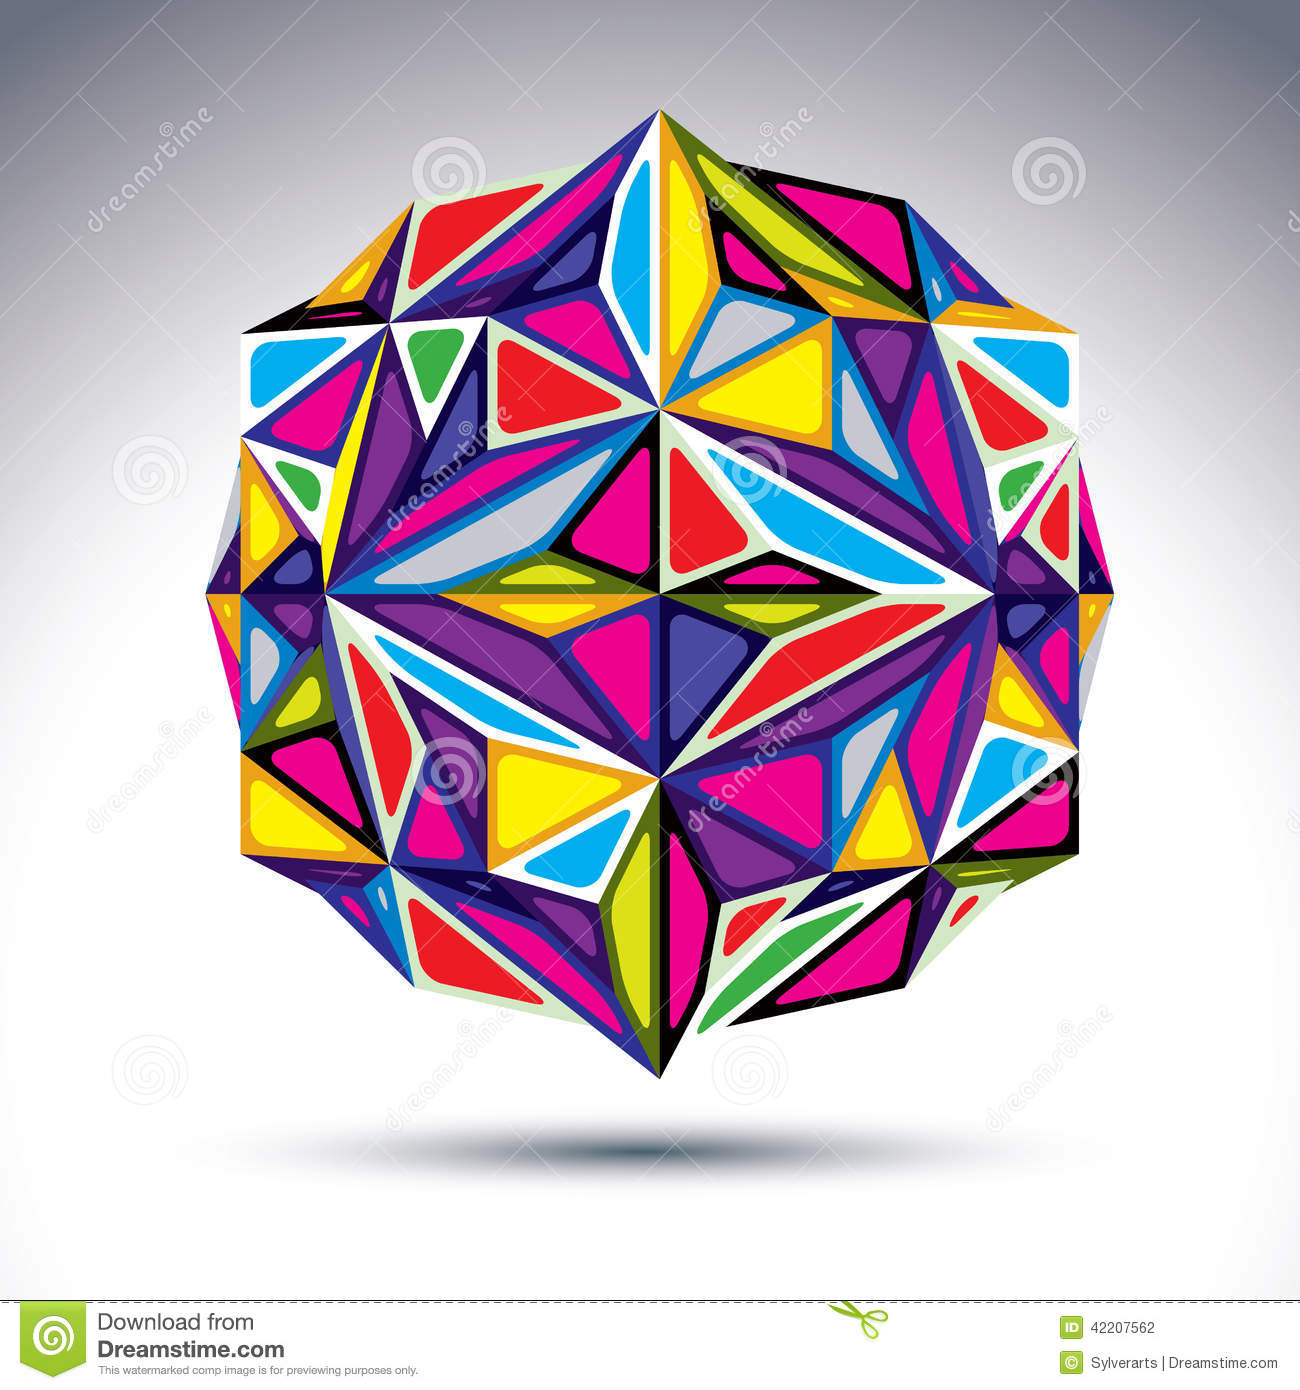 Rich 3d Abstract Psychedelic Fractal Figure. Vector Vivid ...